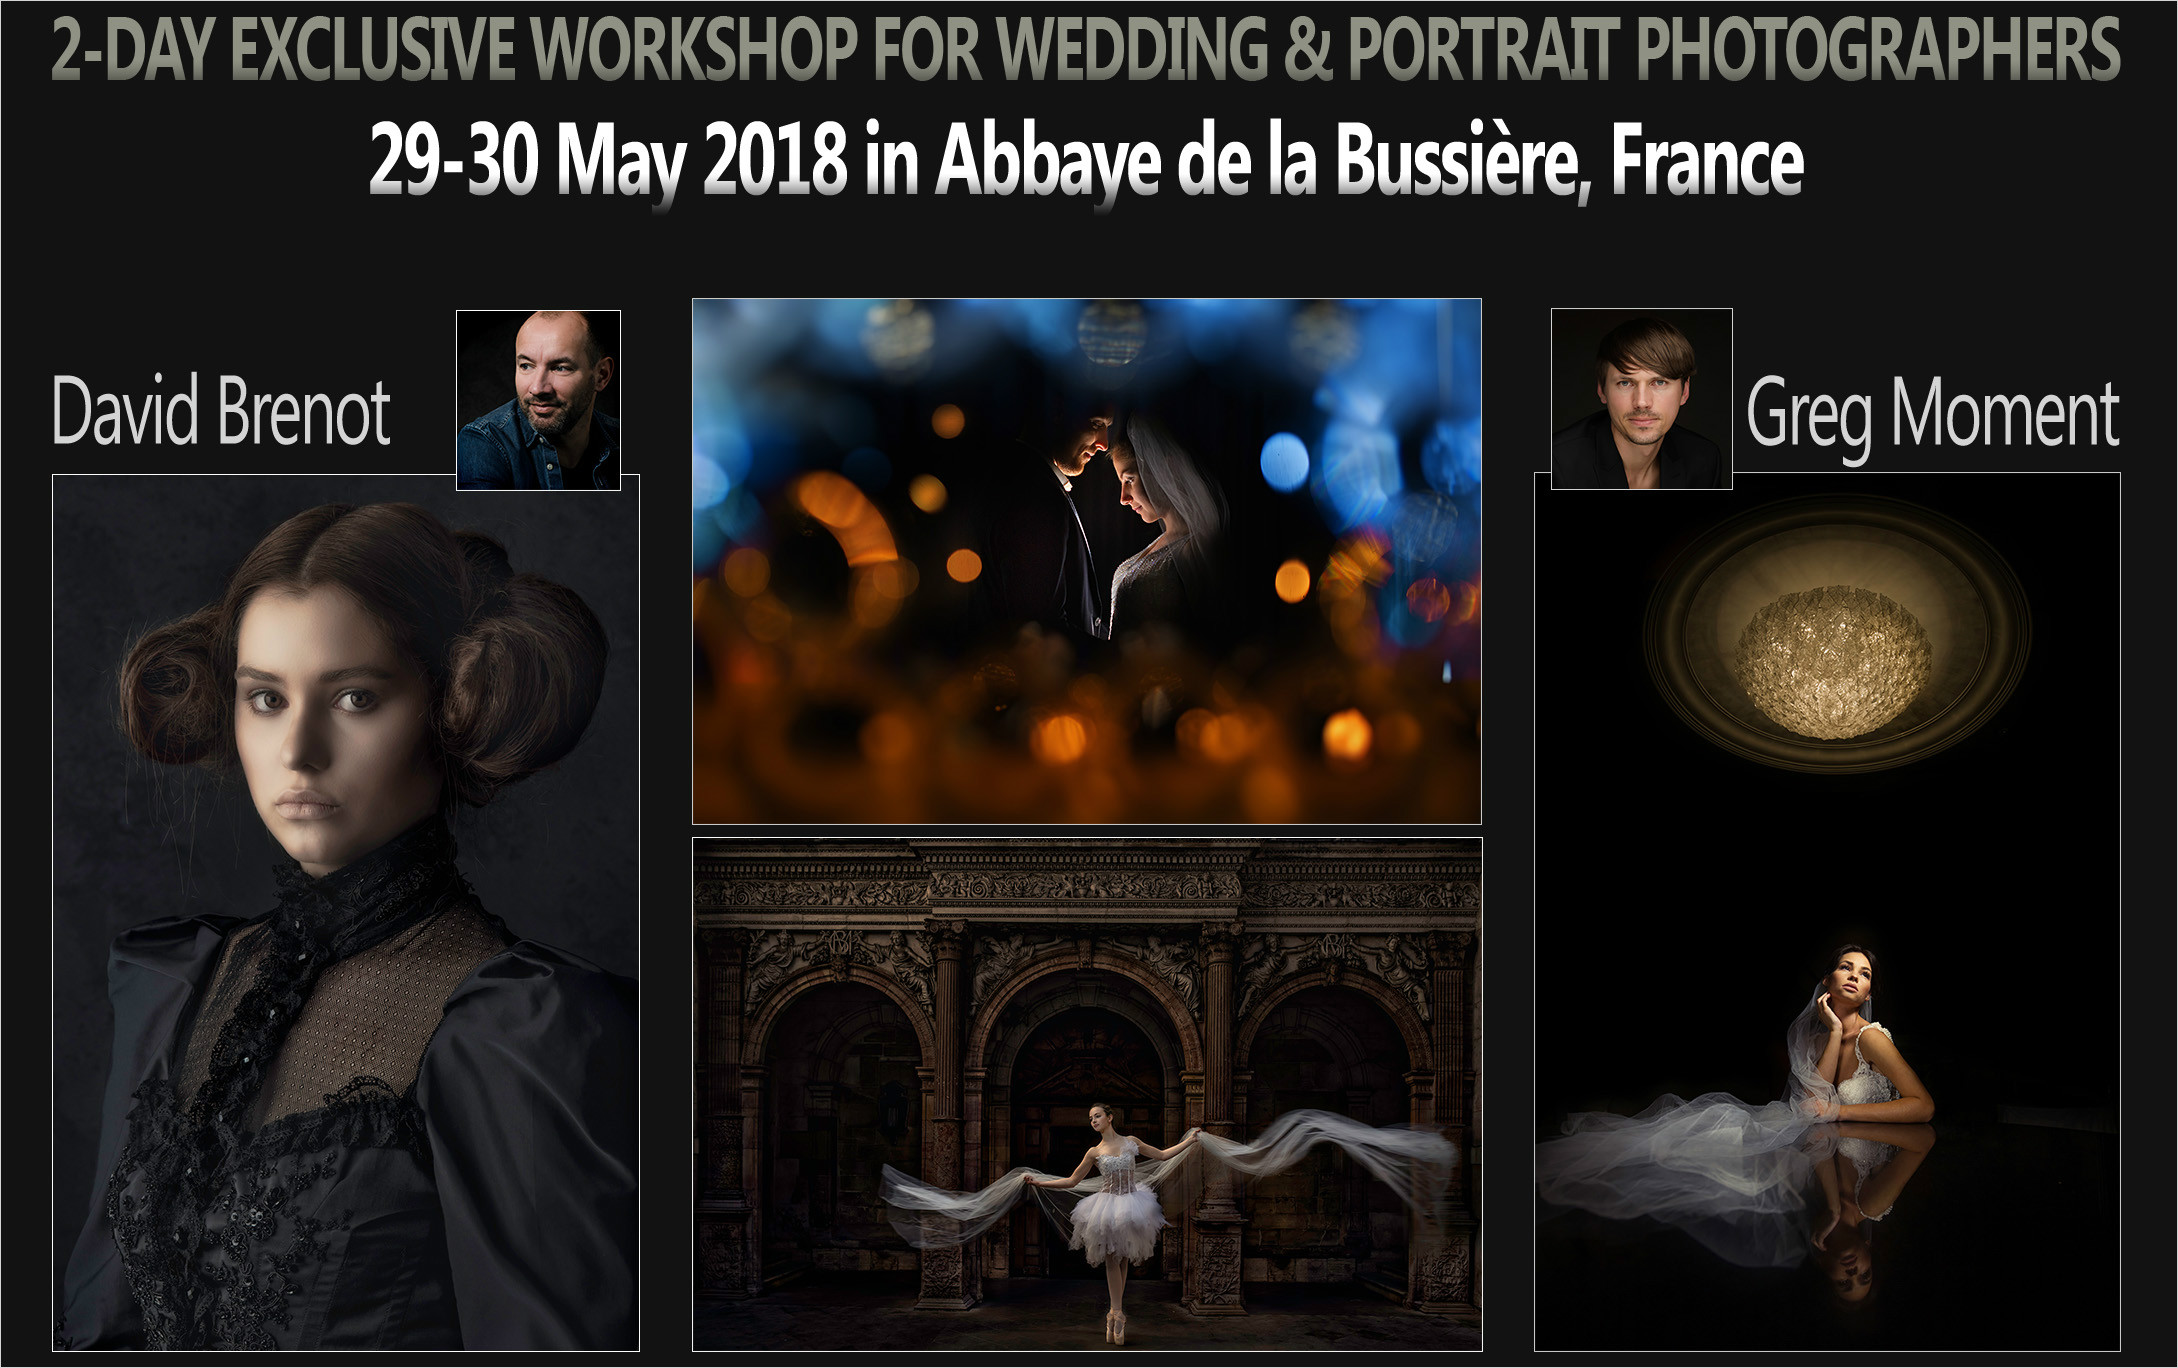 Abbaye de la Bussière, France - 29/30.05.2018. with David Brenot